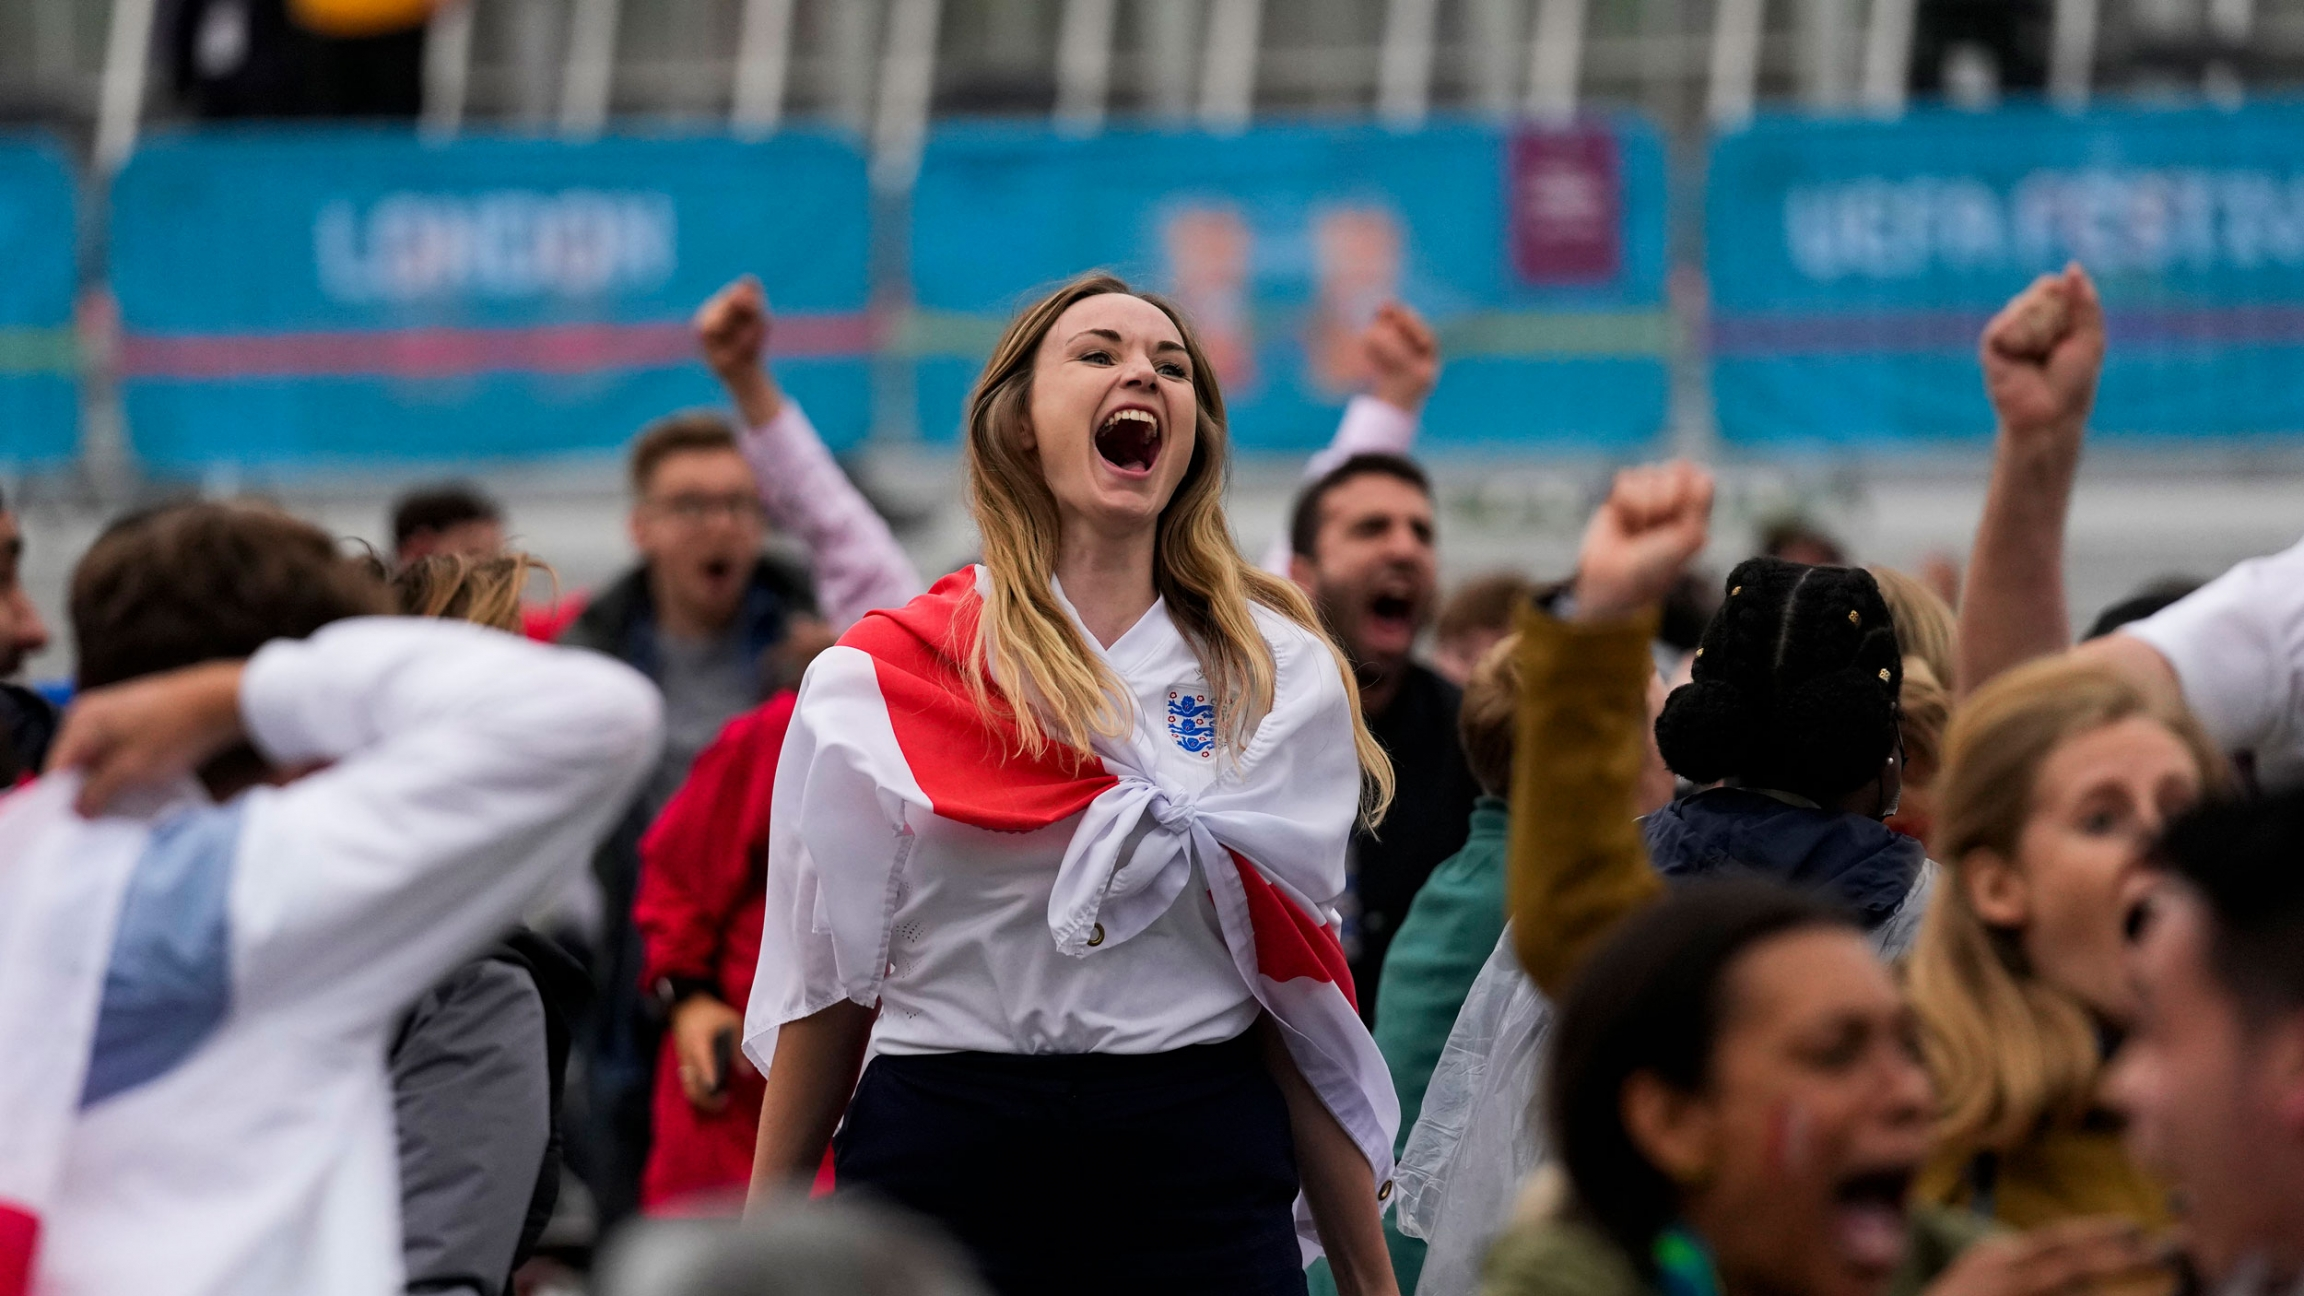 A large crowd of people are shown with a woman in the center of the photograph cheering with her mouth open and an England flag draped on her shoulders.